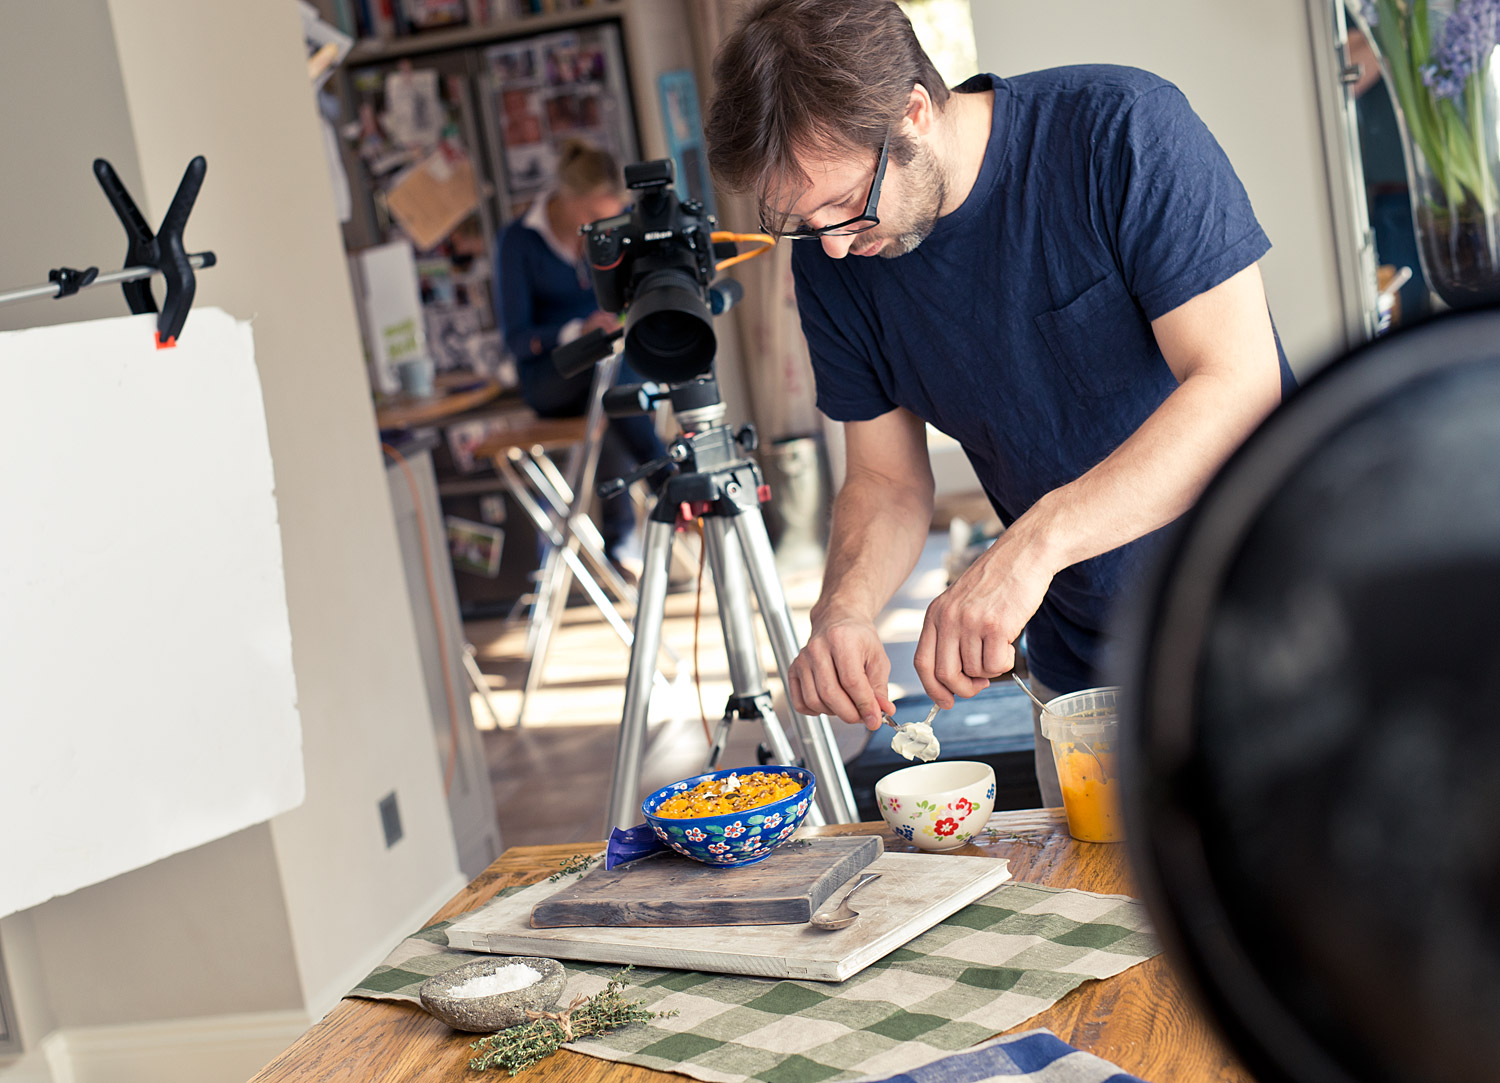 Behind the scenes on our food shoot with Munchy Seeds